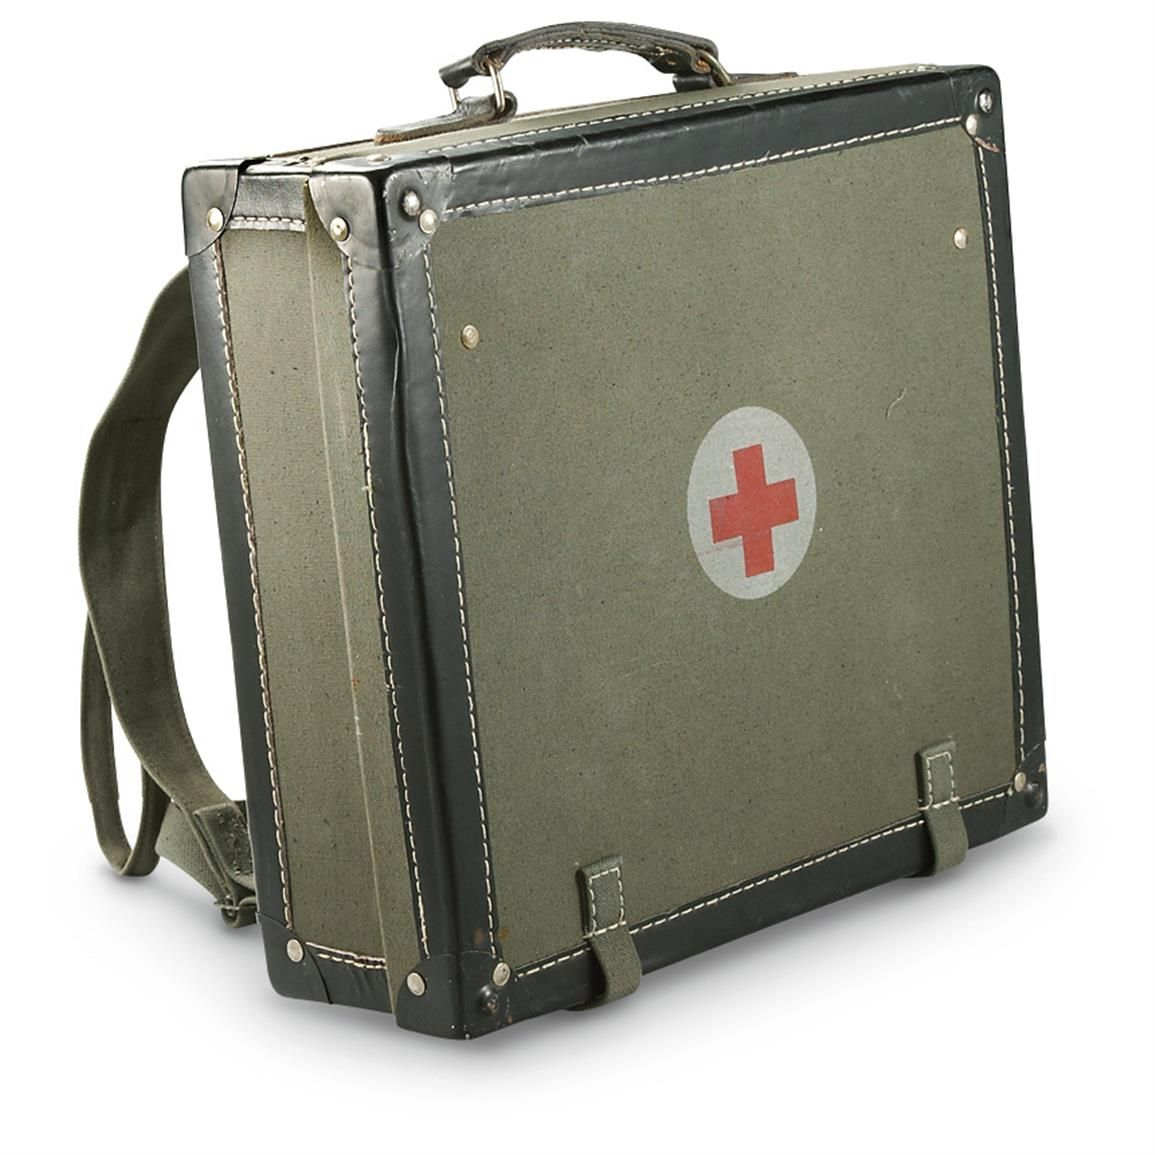 New Serbian Military Surplus Medical Hard Case No Need Use At All For This Can Be Thought Of Time Blast